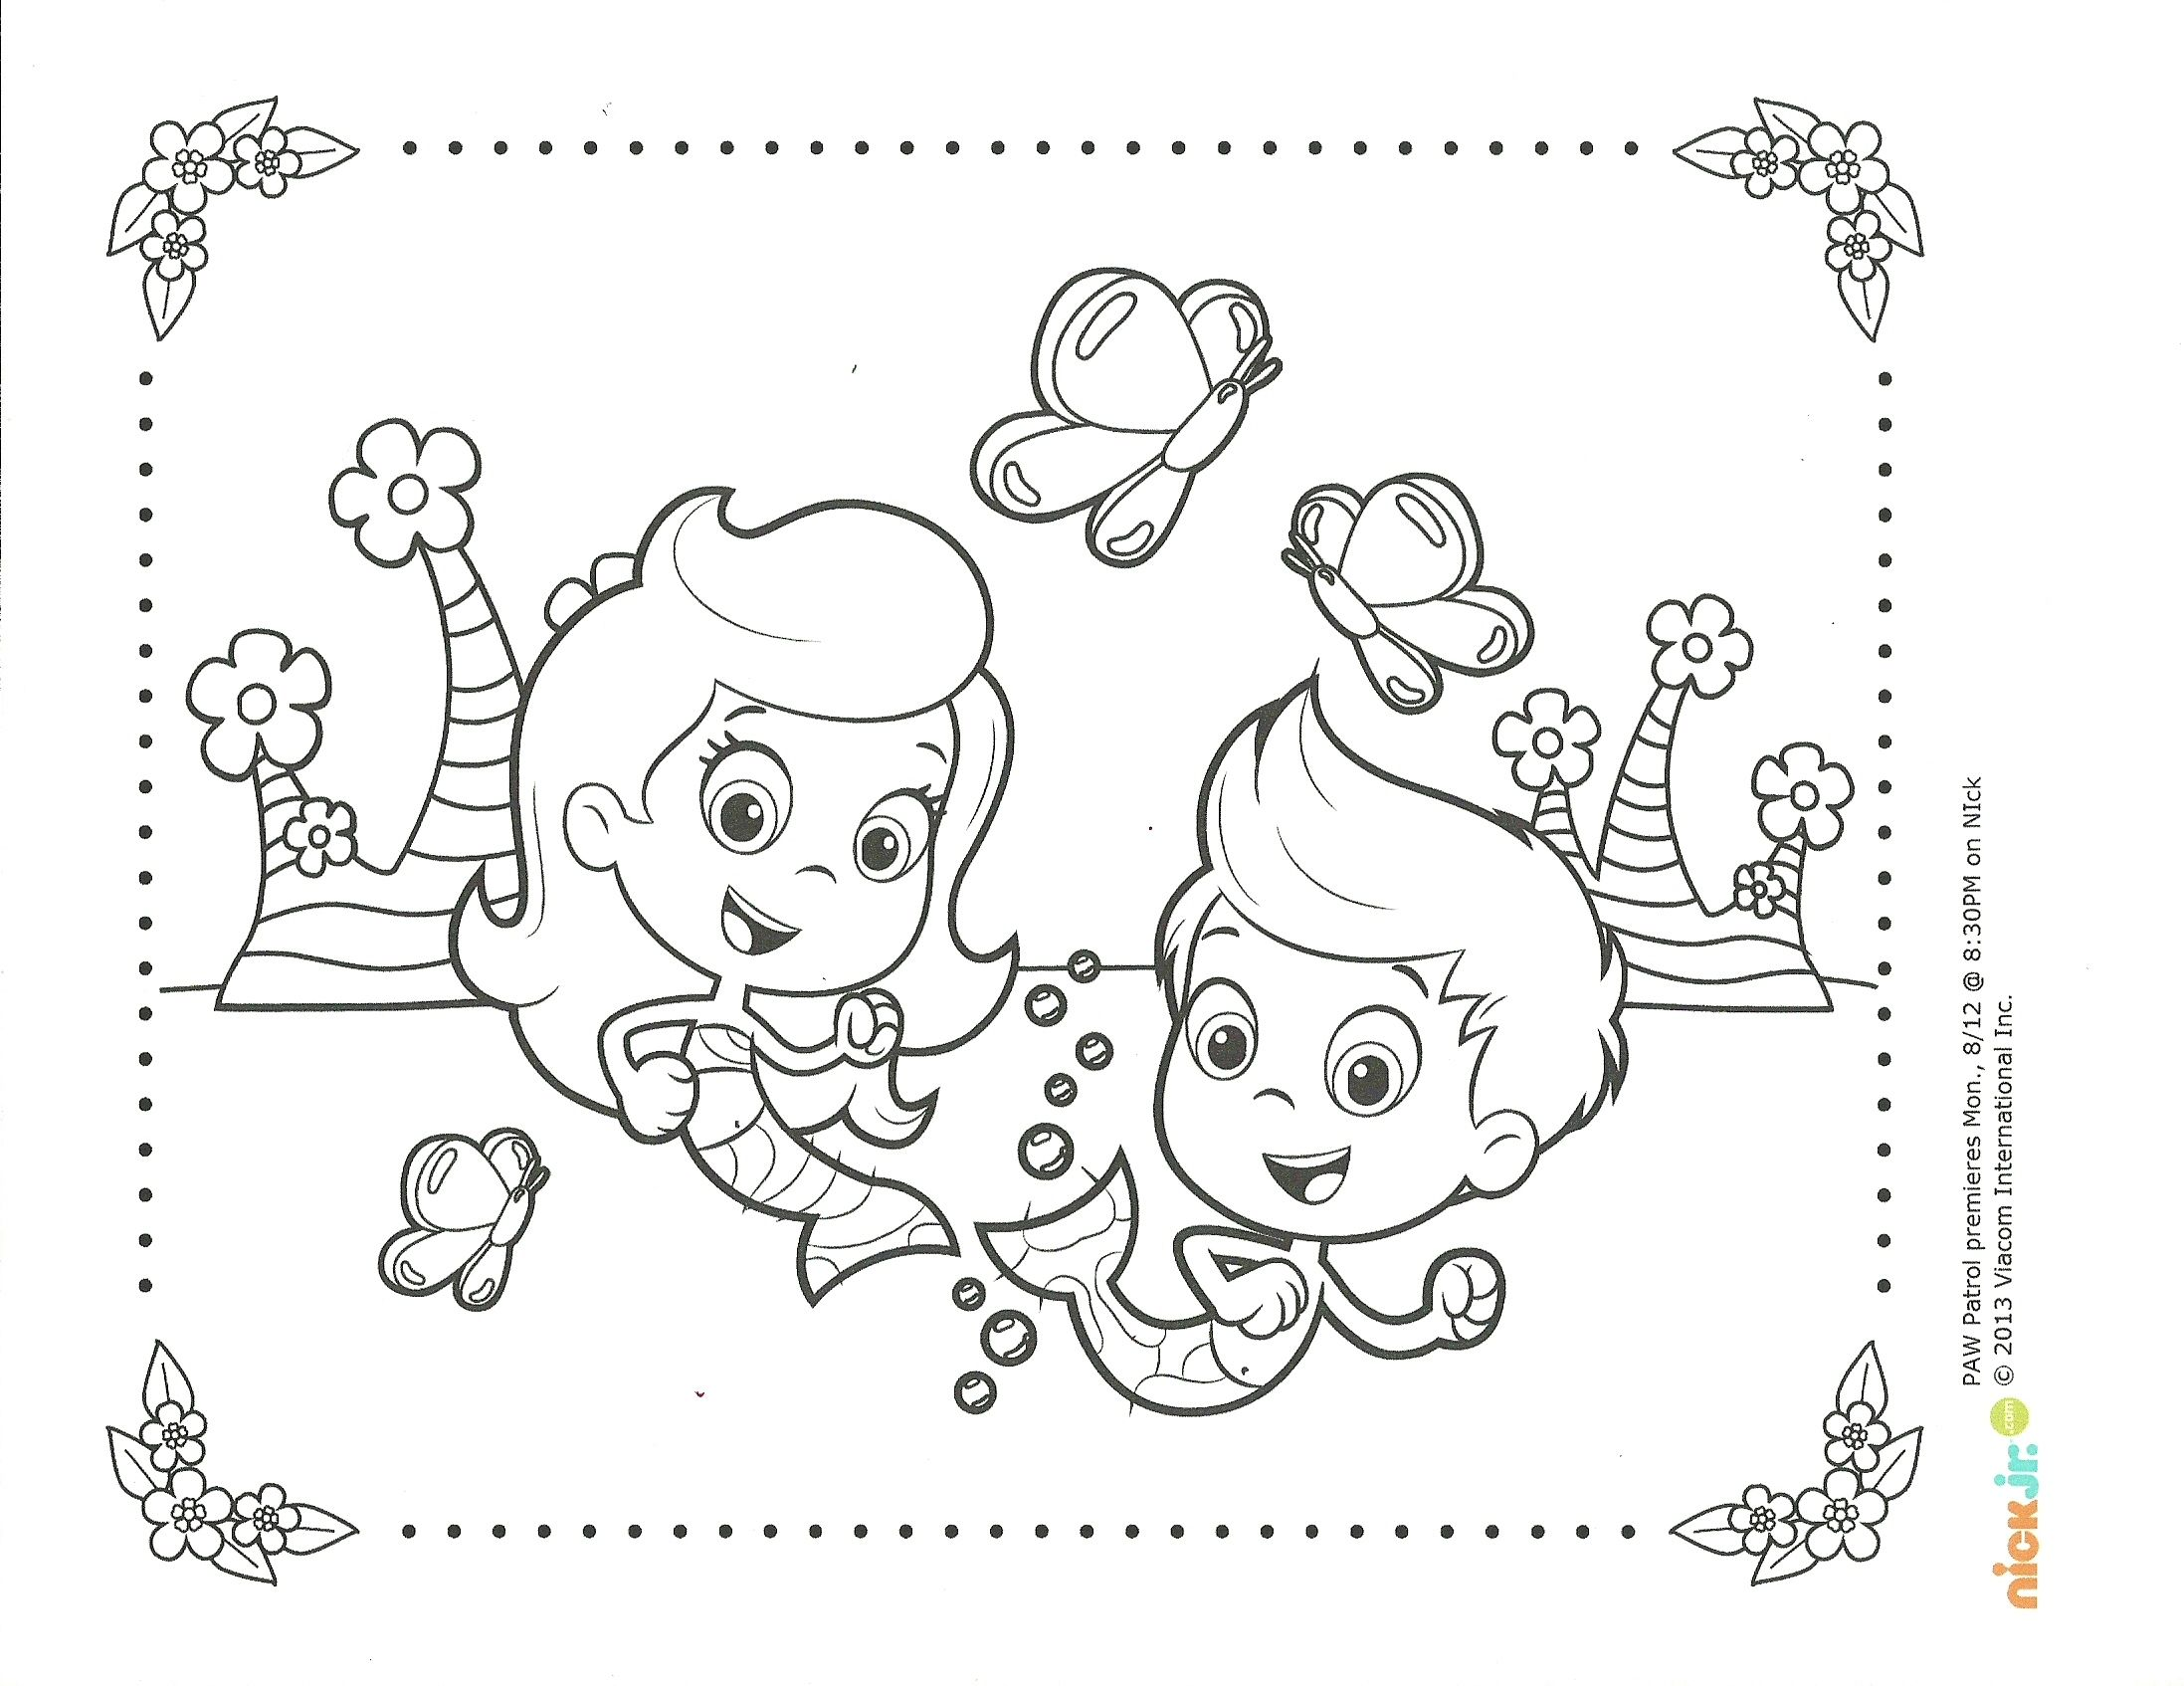 Bubble Guppies Coloring Page  COLORING PAGES FOR FREE  Pinterest